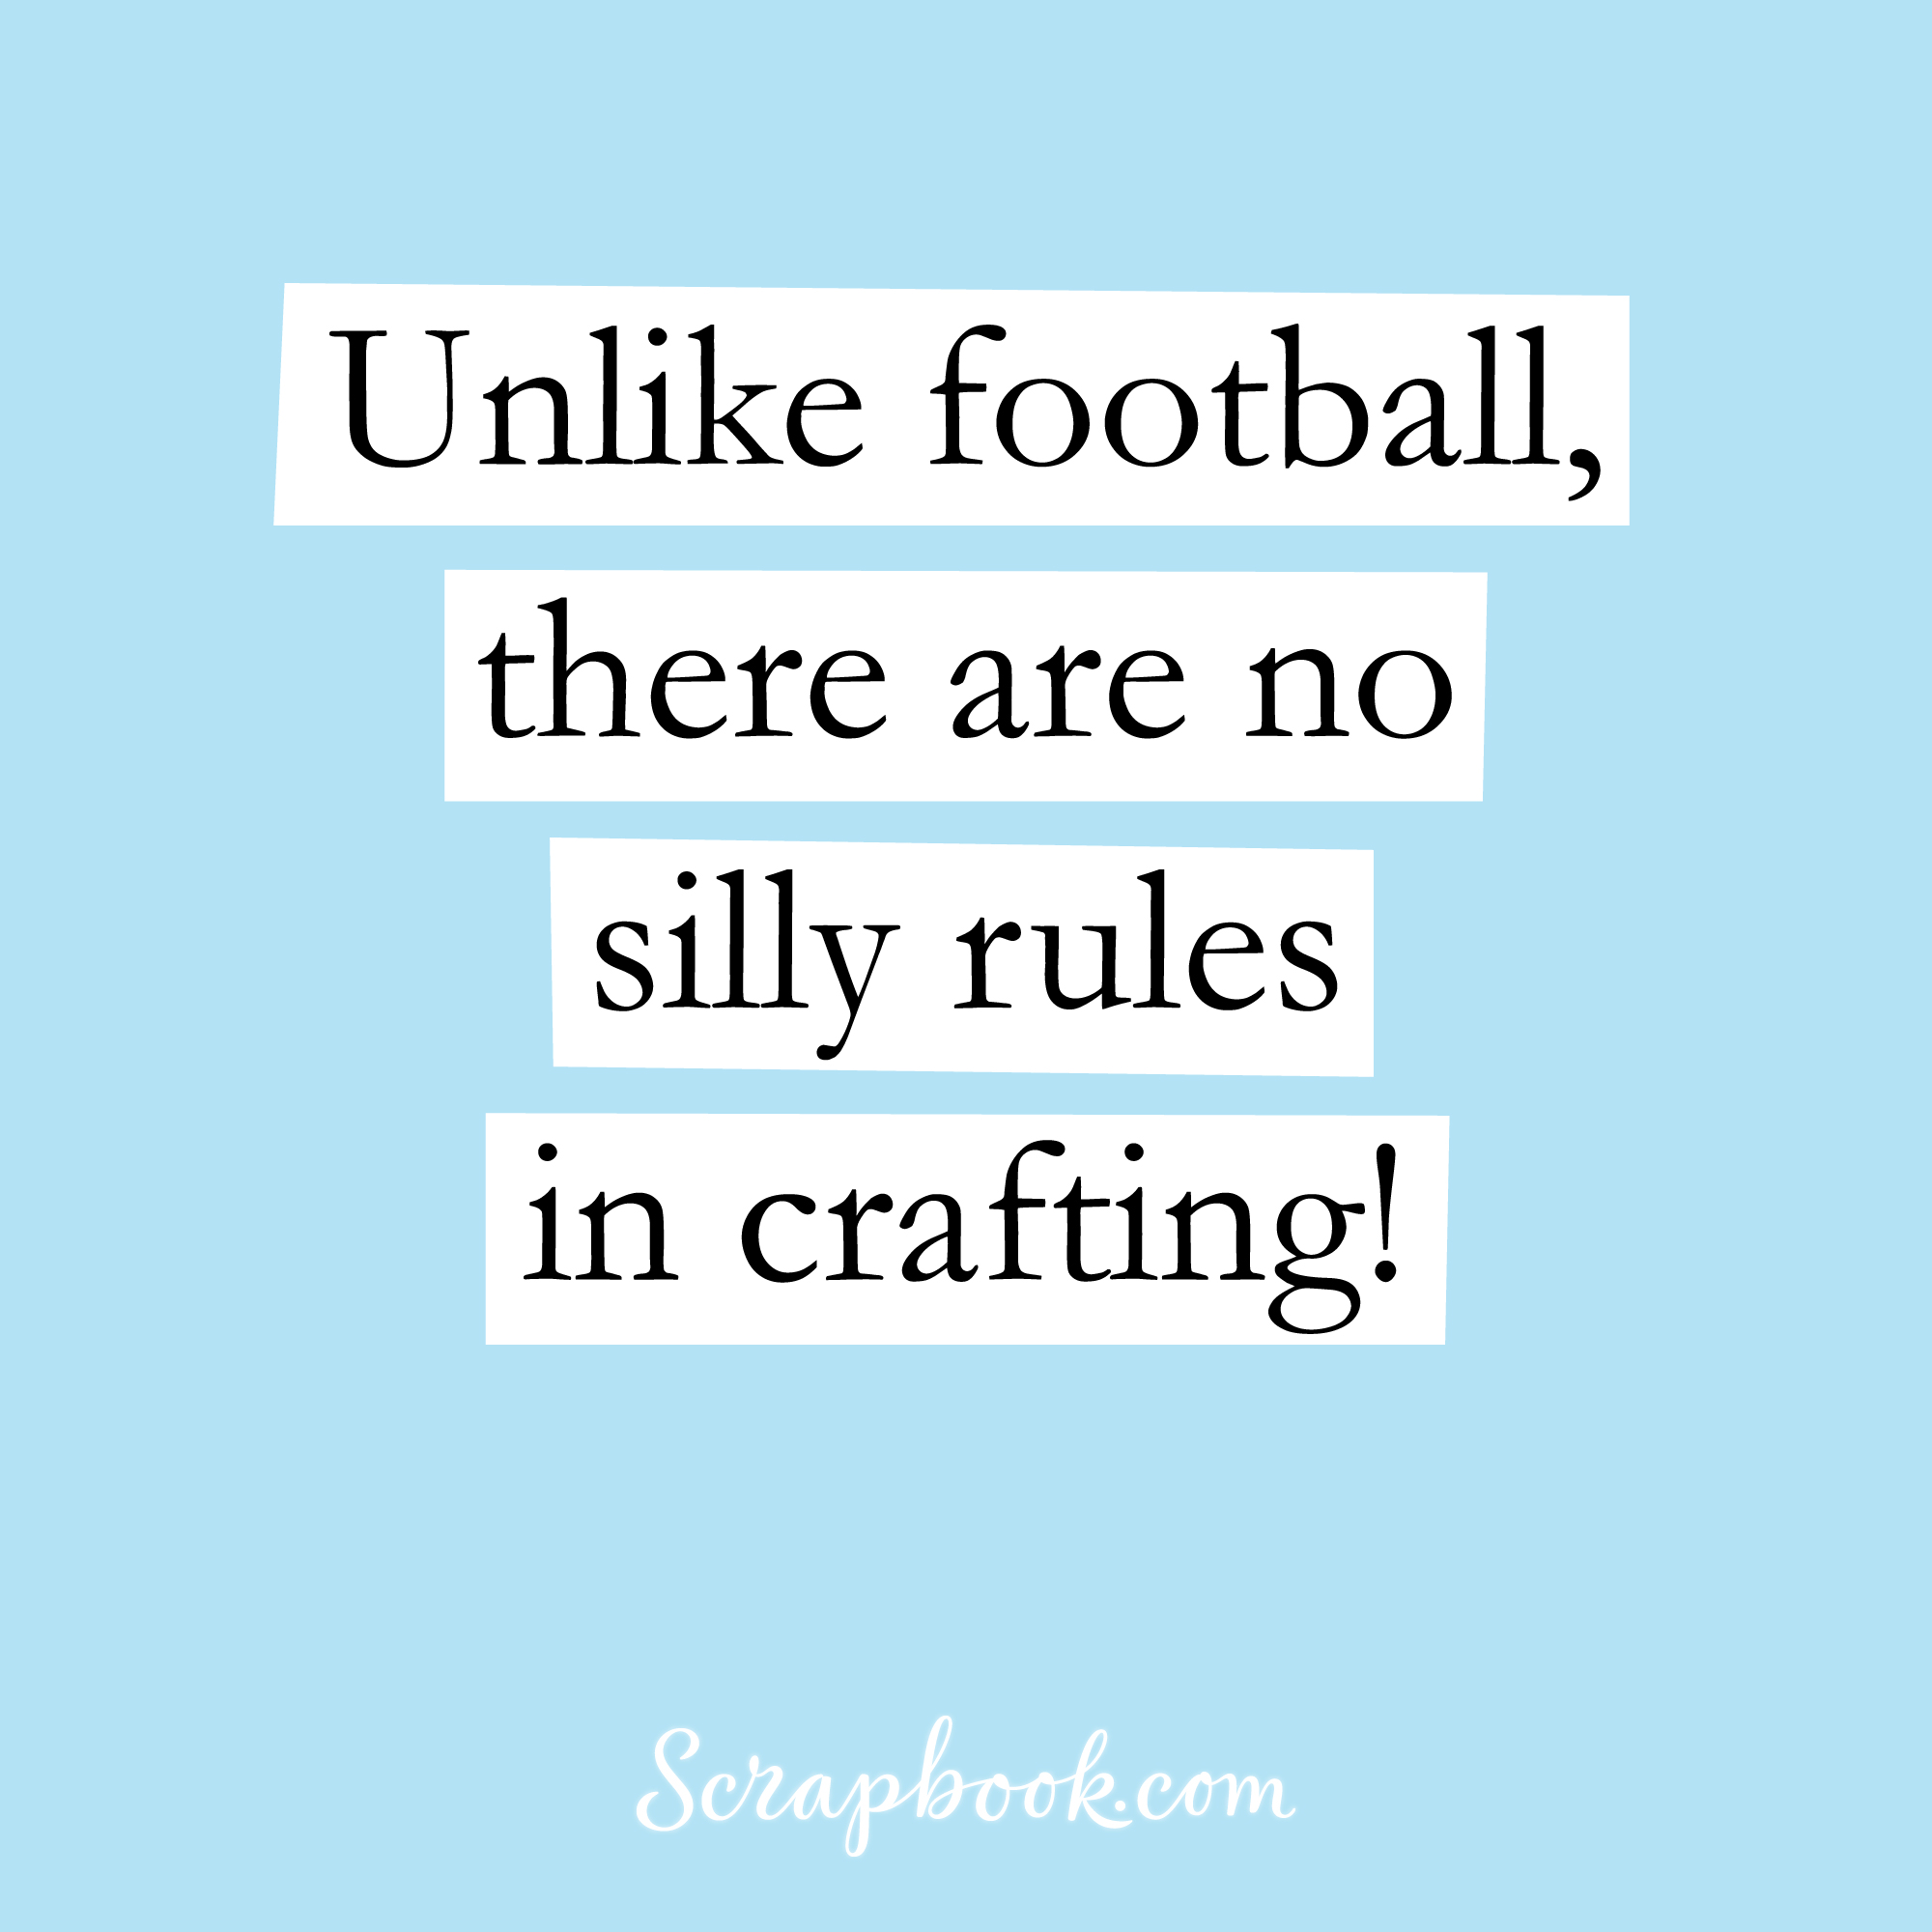 Unlike football, there are no silly rules in crafting!